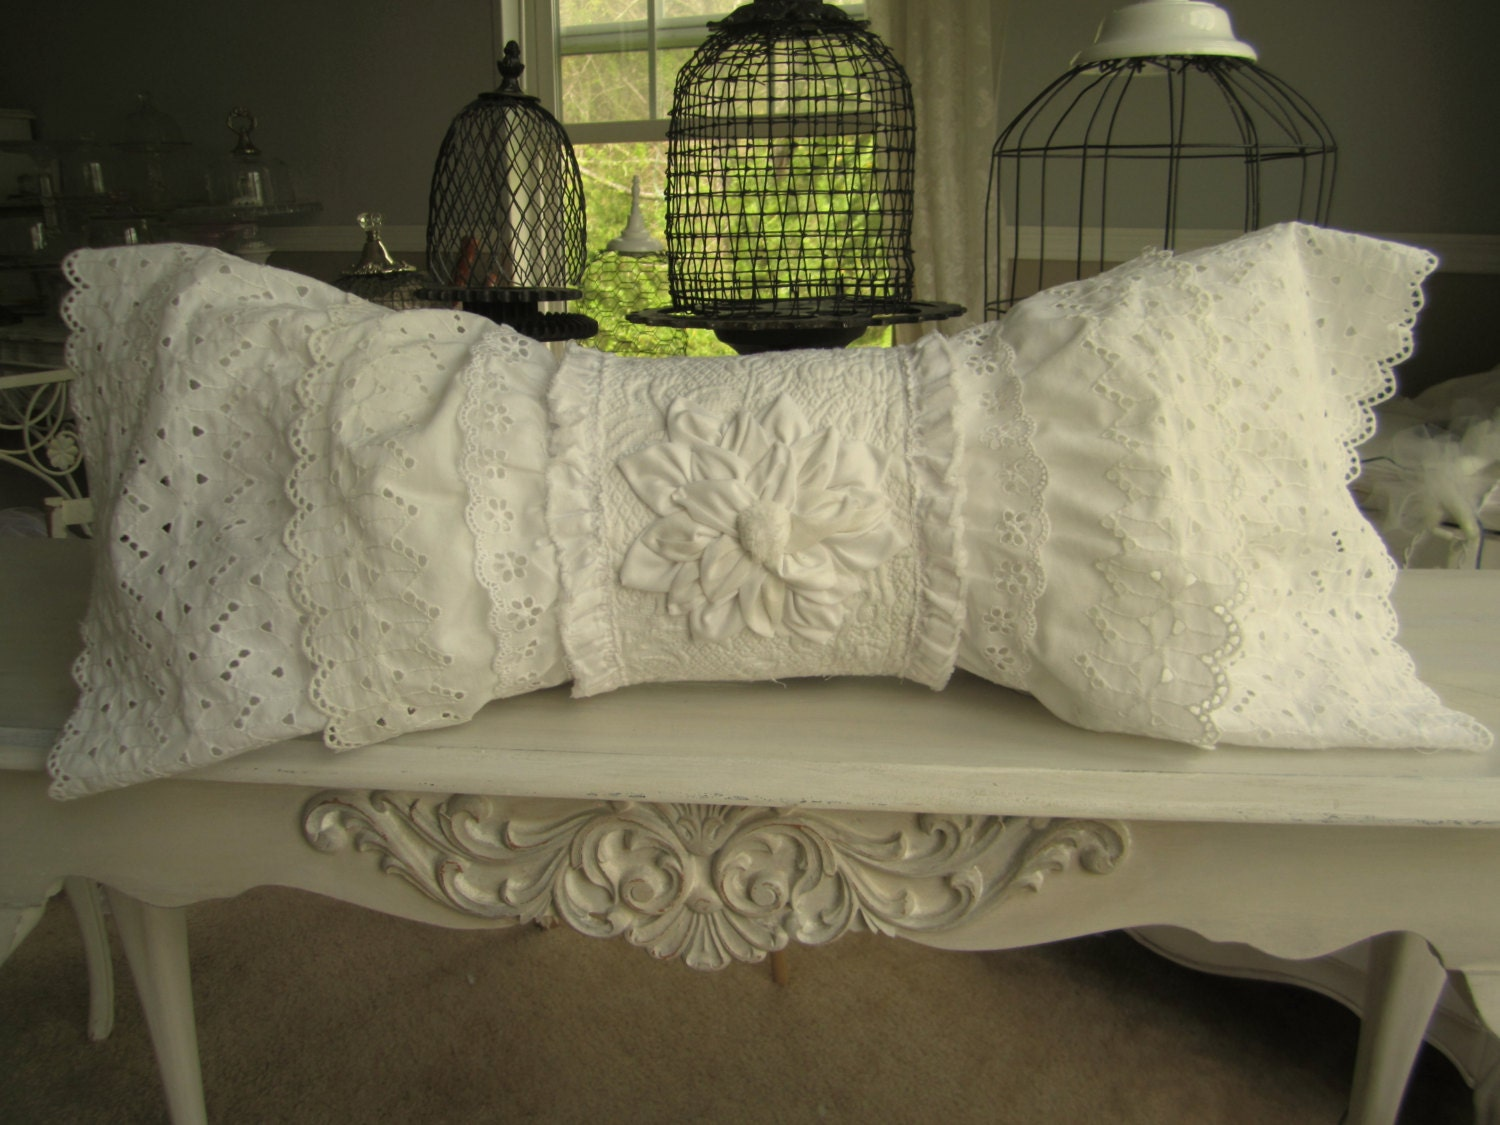 Popular items for Eyelet lace pillow on Etsy